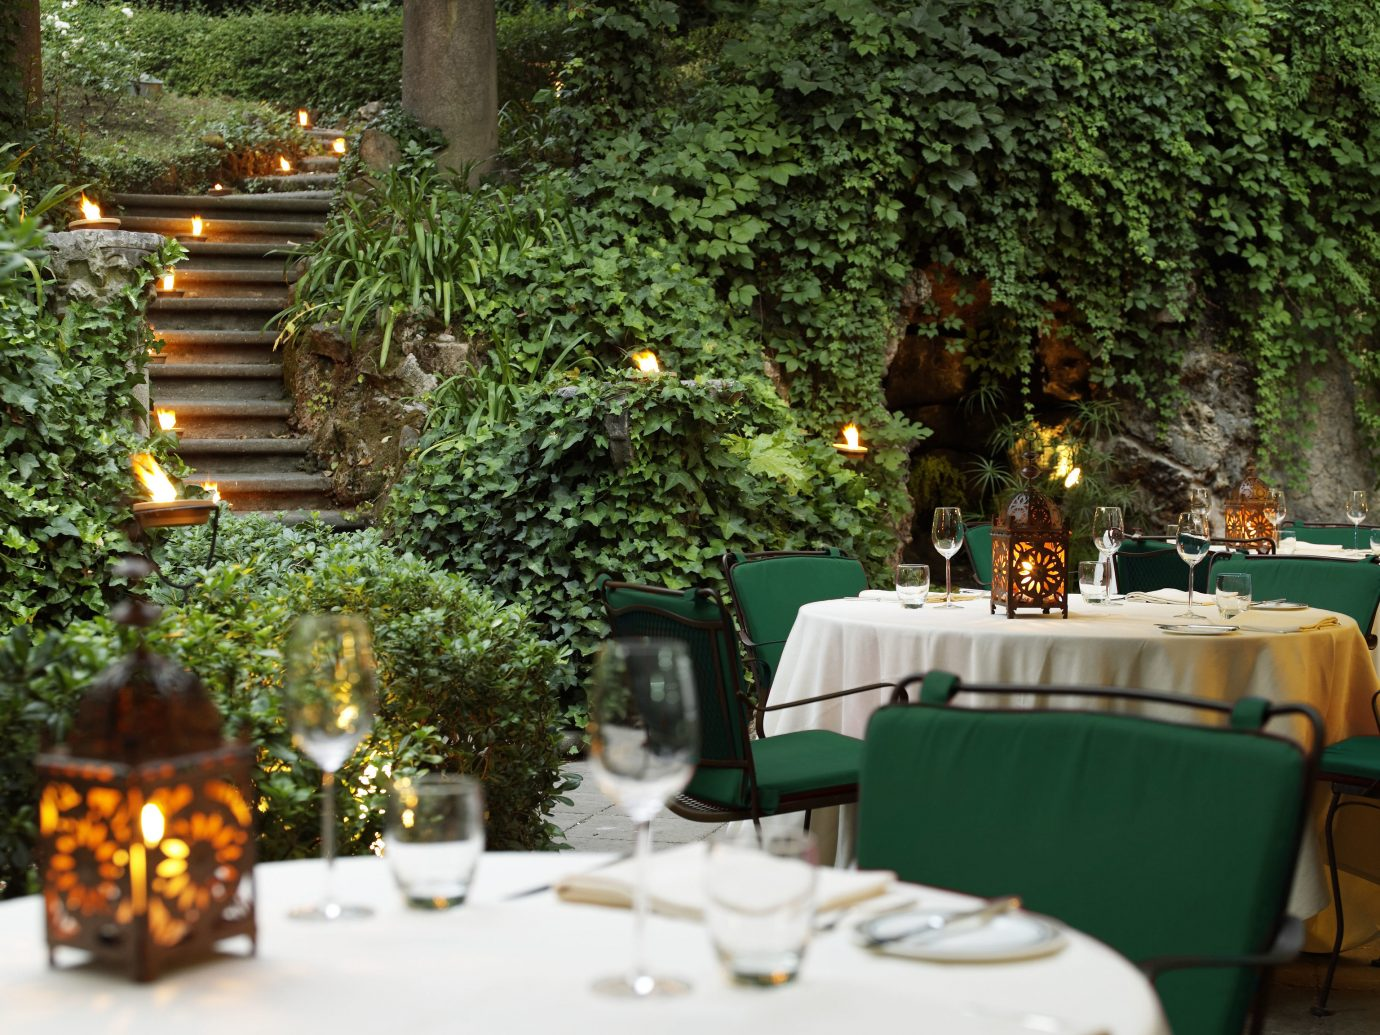 Boutique Hotels Food + Drink Hotels Italy Luxury Travel Romantic Hotels Rome tree flower backyard floristry meal restaurant estate Garden set dining table